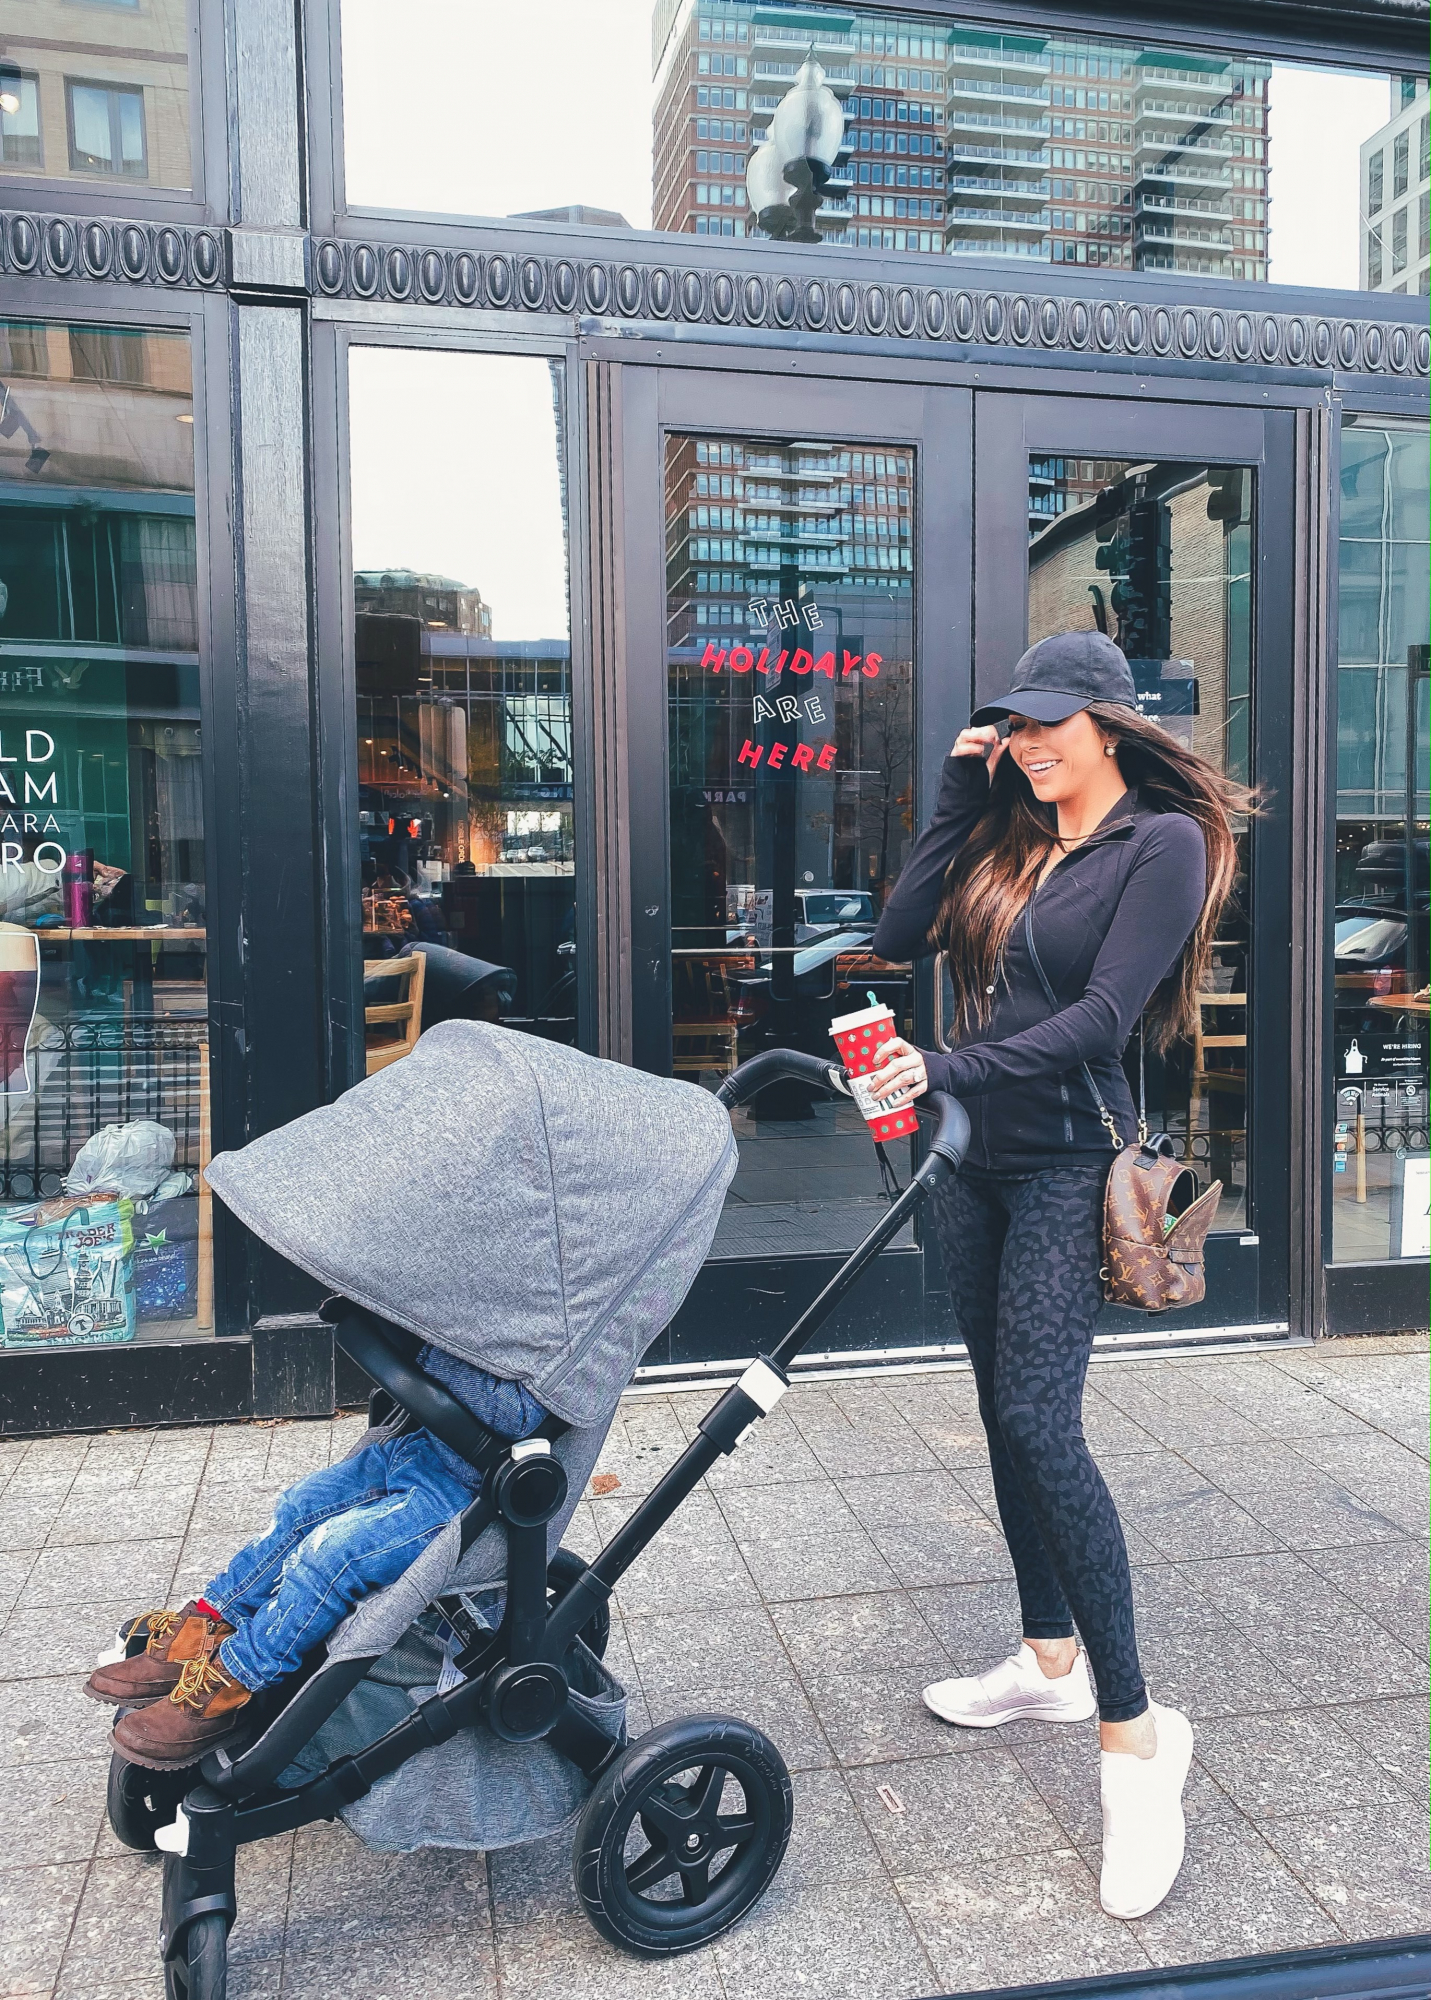 boston 2019 winter, luluelmon outfit | A YEAR IN REVIEW : MASSIVE 2019 INSTAGRAM RECAP by popular Oklahoma life and style blog, The Sweetest Thing: image of a woman pushing a Nordstrom Donkey2 Classic Mono Complete Stroller with Bassinet BUGABOO and wearing a Lululemon Baller Hat Run, ShopBop APL: Athletic Propulsion Labs TechLoom Bliss Sneakers, Lululemon Define Jacket, and holding a Louis Vuitton mini backpack.